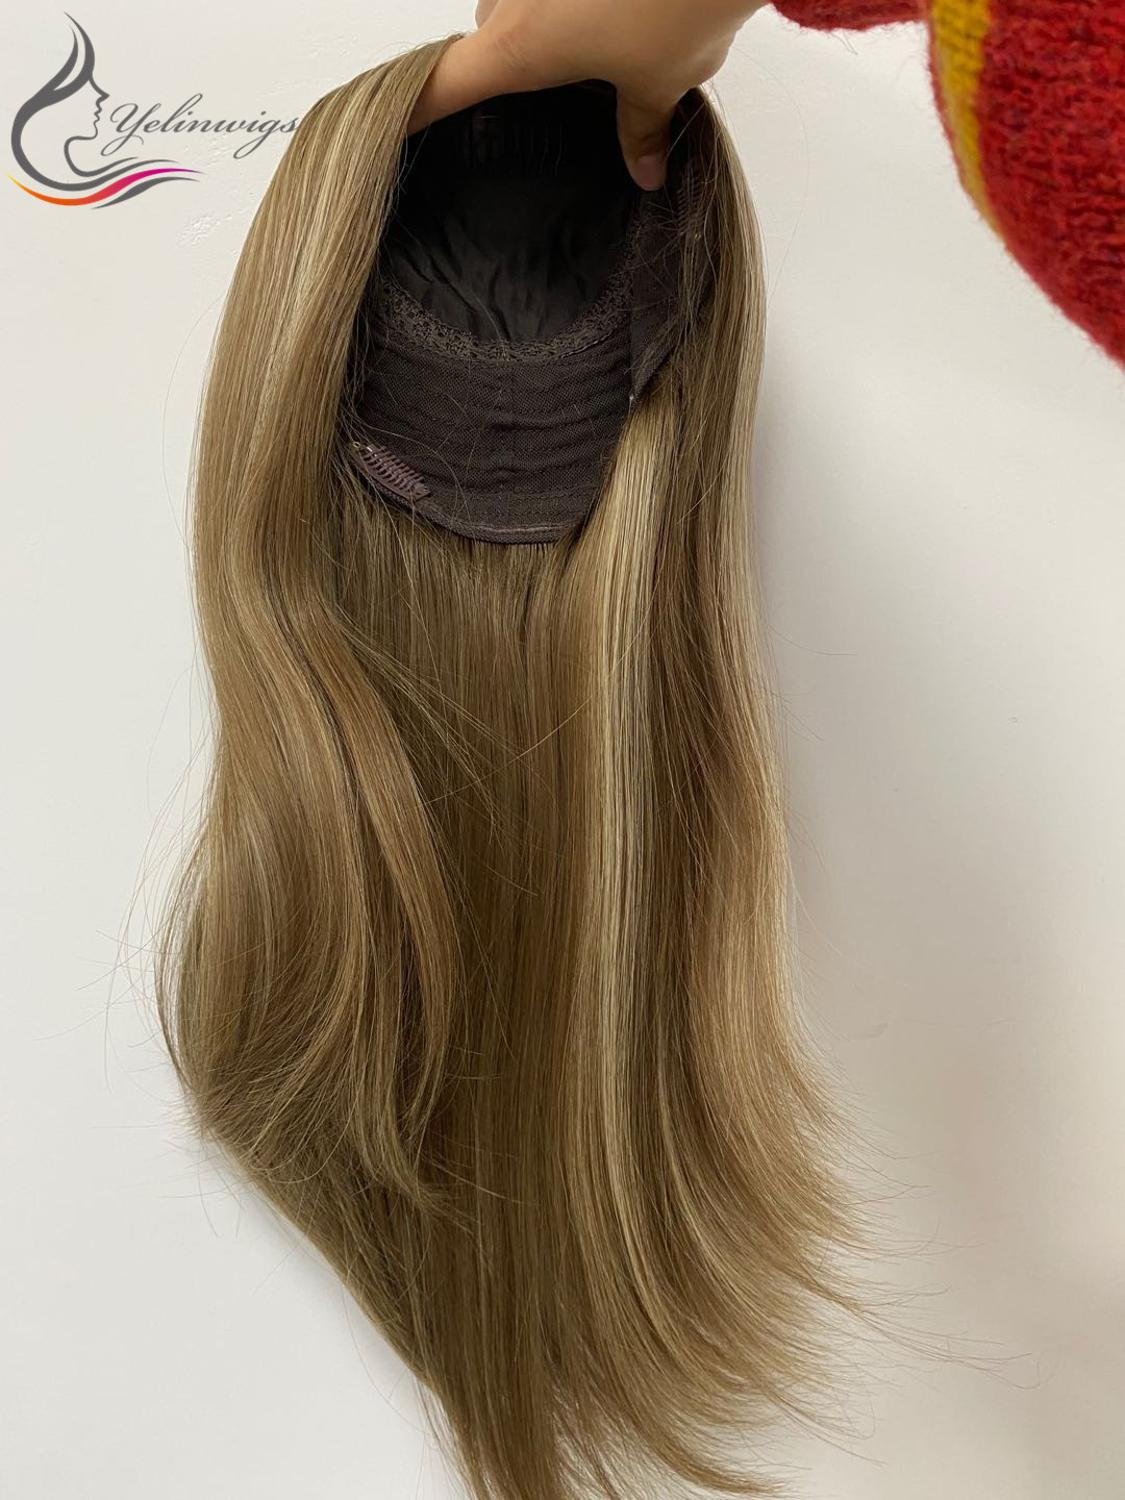 Popular European Virgin Hair Silk Top Jewish Topper Popular Hair Pieces For White Women With Discount Price